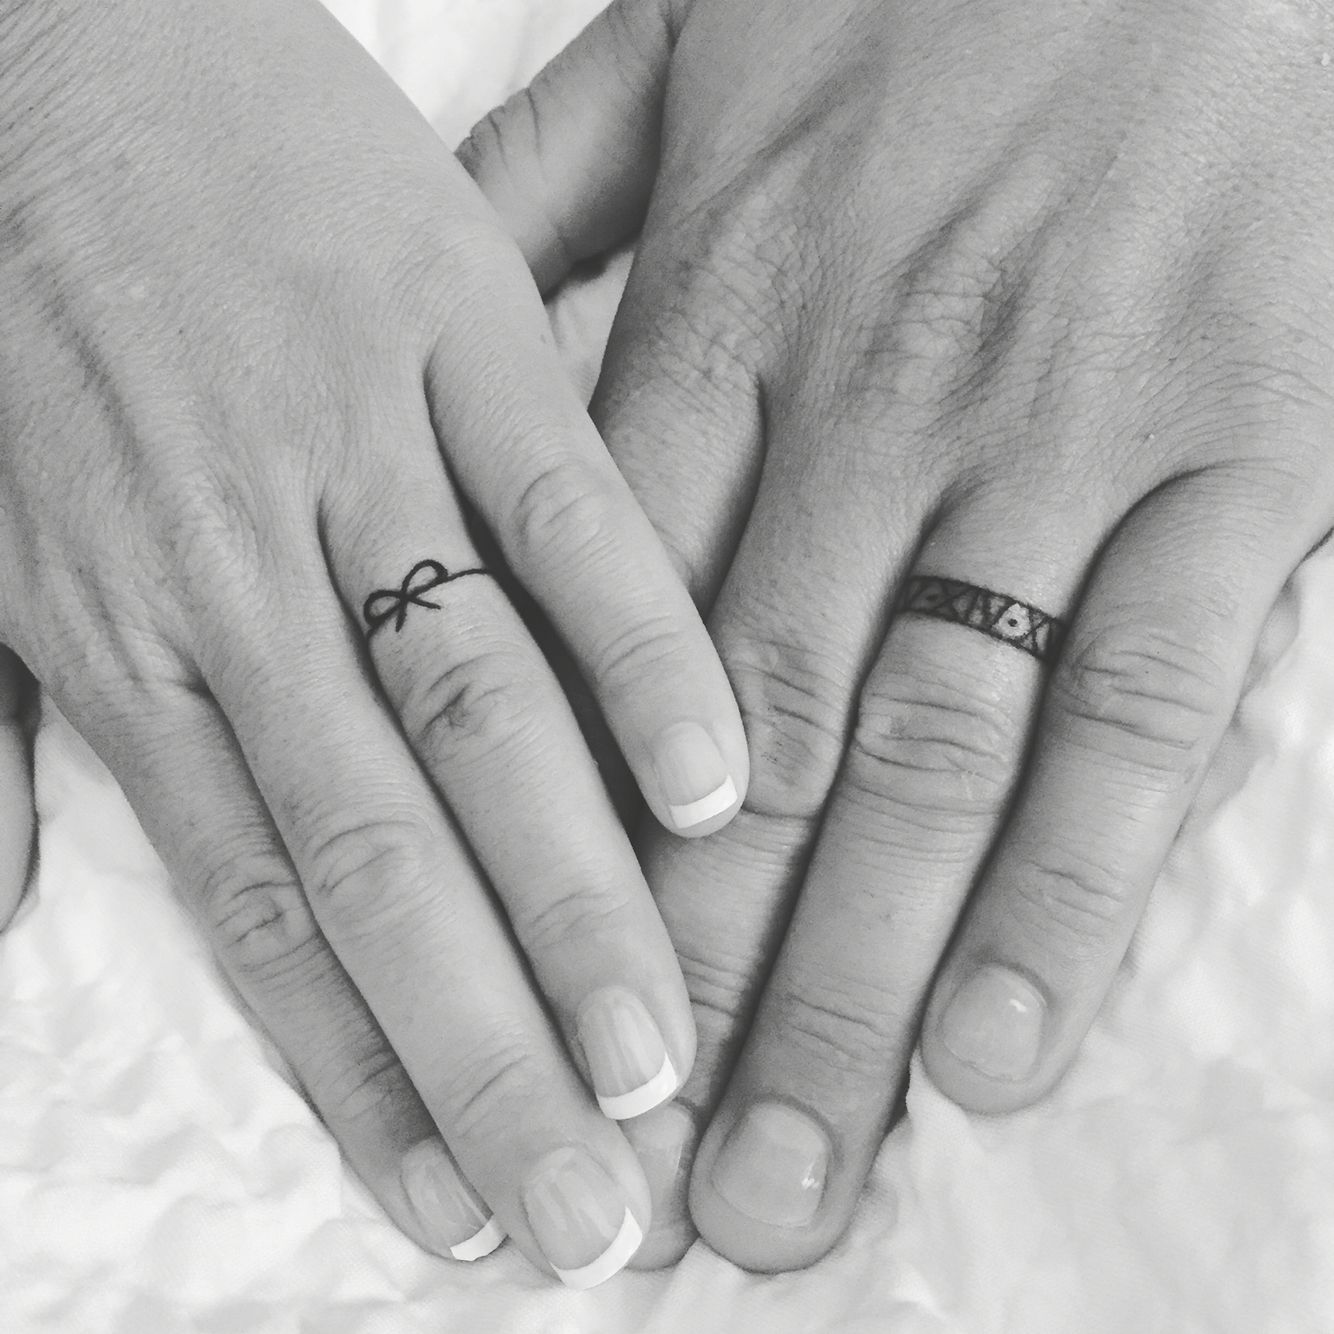 Husband and Wife Wedding Band Tattoos Tattoo wedding rings